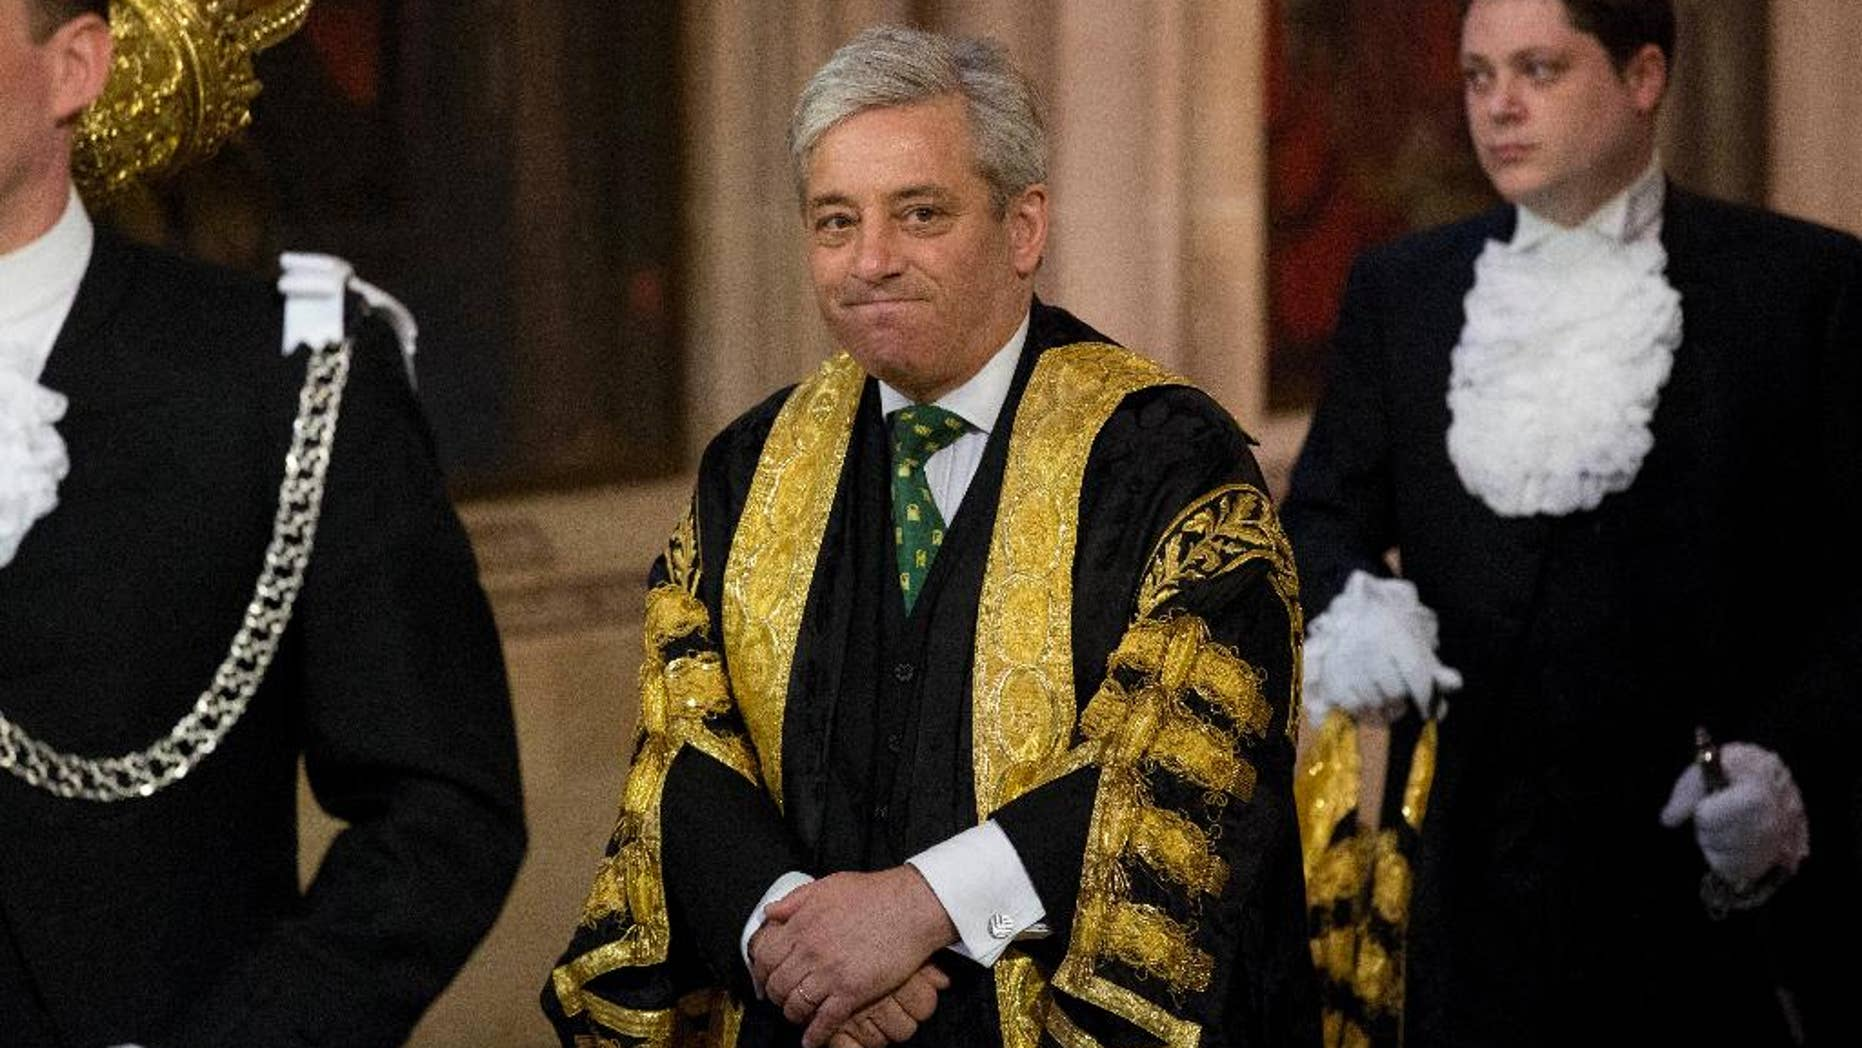 FILE - A Wednesday, June 4, 2014 file photo of Britain's Speaker of the House of Commons John Bercow as he walks through Central Lobby before Britain's Queen Elizabeth II delivered the Queen's Speech at the State Opening of Parliament at the Palace of Westminster in London. The Speaker of Britain's House of Commons says he strongly opposes letting U.S. President Donald Trump address Parliament during a state visit to the U.K. John Bercow said Monday, Feb. 6, 2017, that he would have opposed the invitation even before Trump's temporary ban on citizens of seven majority-Muslim nations from entering the U.S. (AP Photo/Matt Dunham, Pool, File)